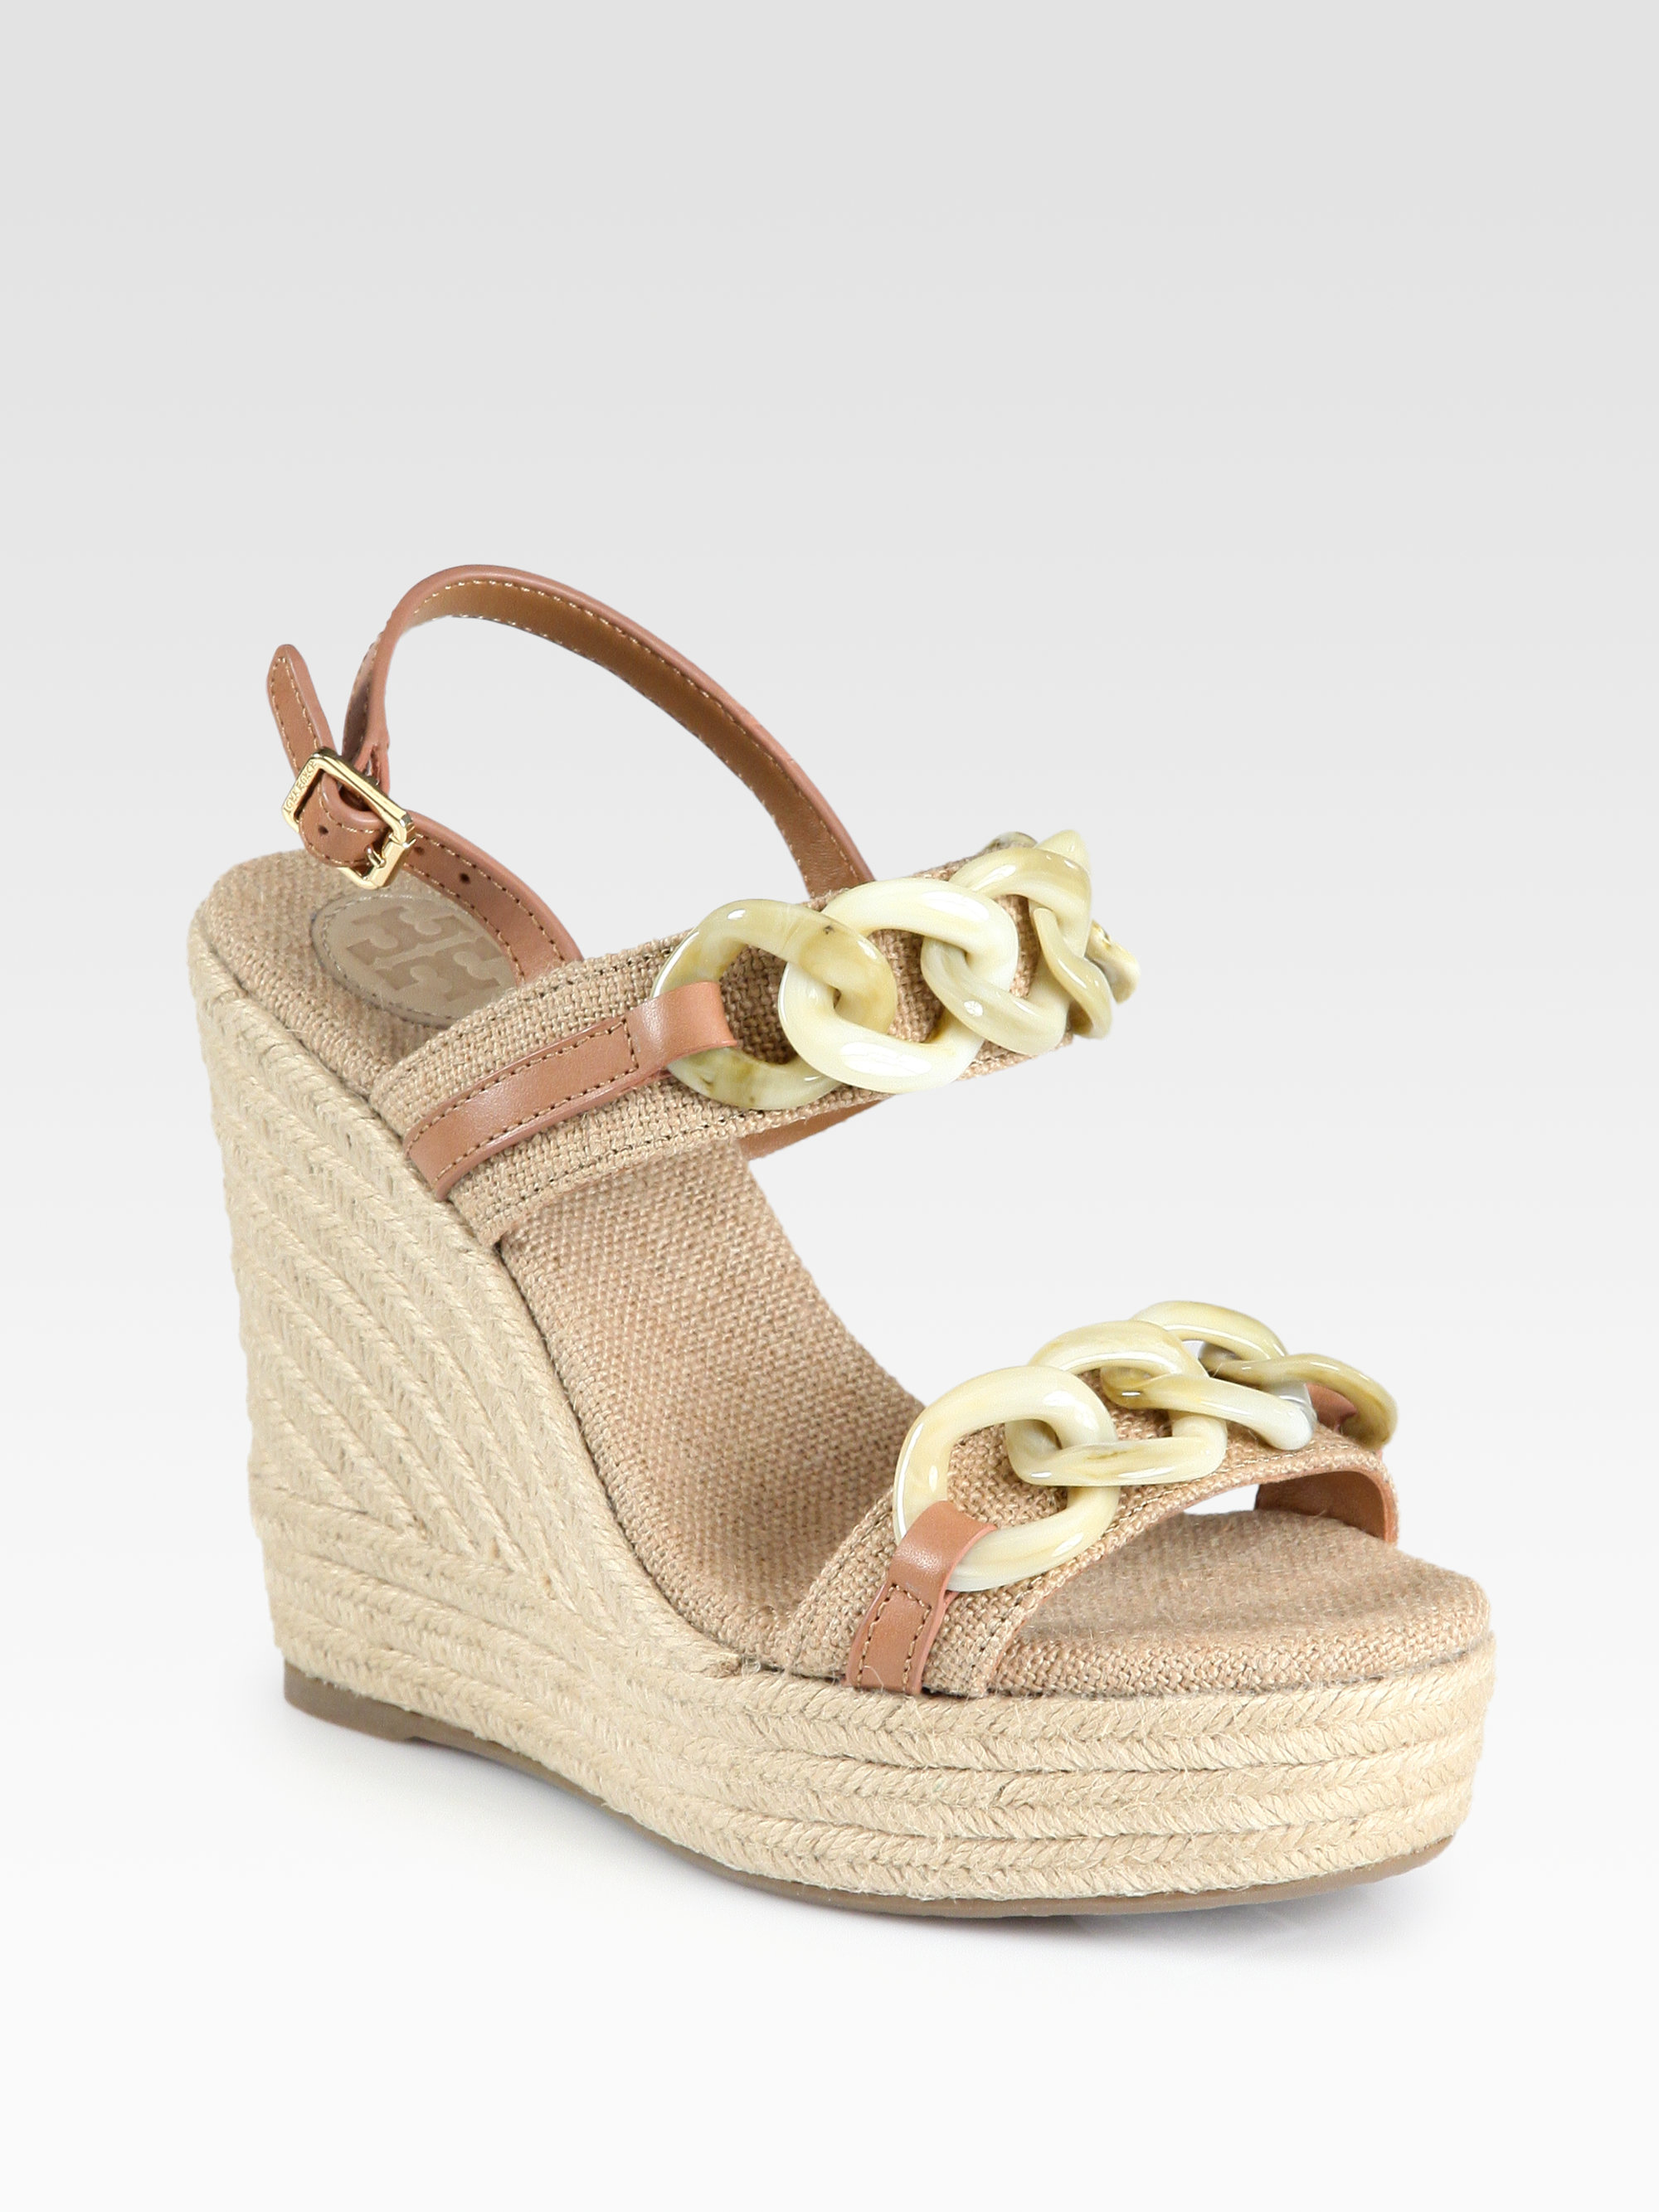 14805115806 Lyst - Tory Burch Alta Canvas Leather Espadrille Wedge Sandals in Brown